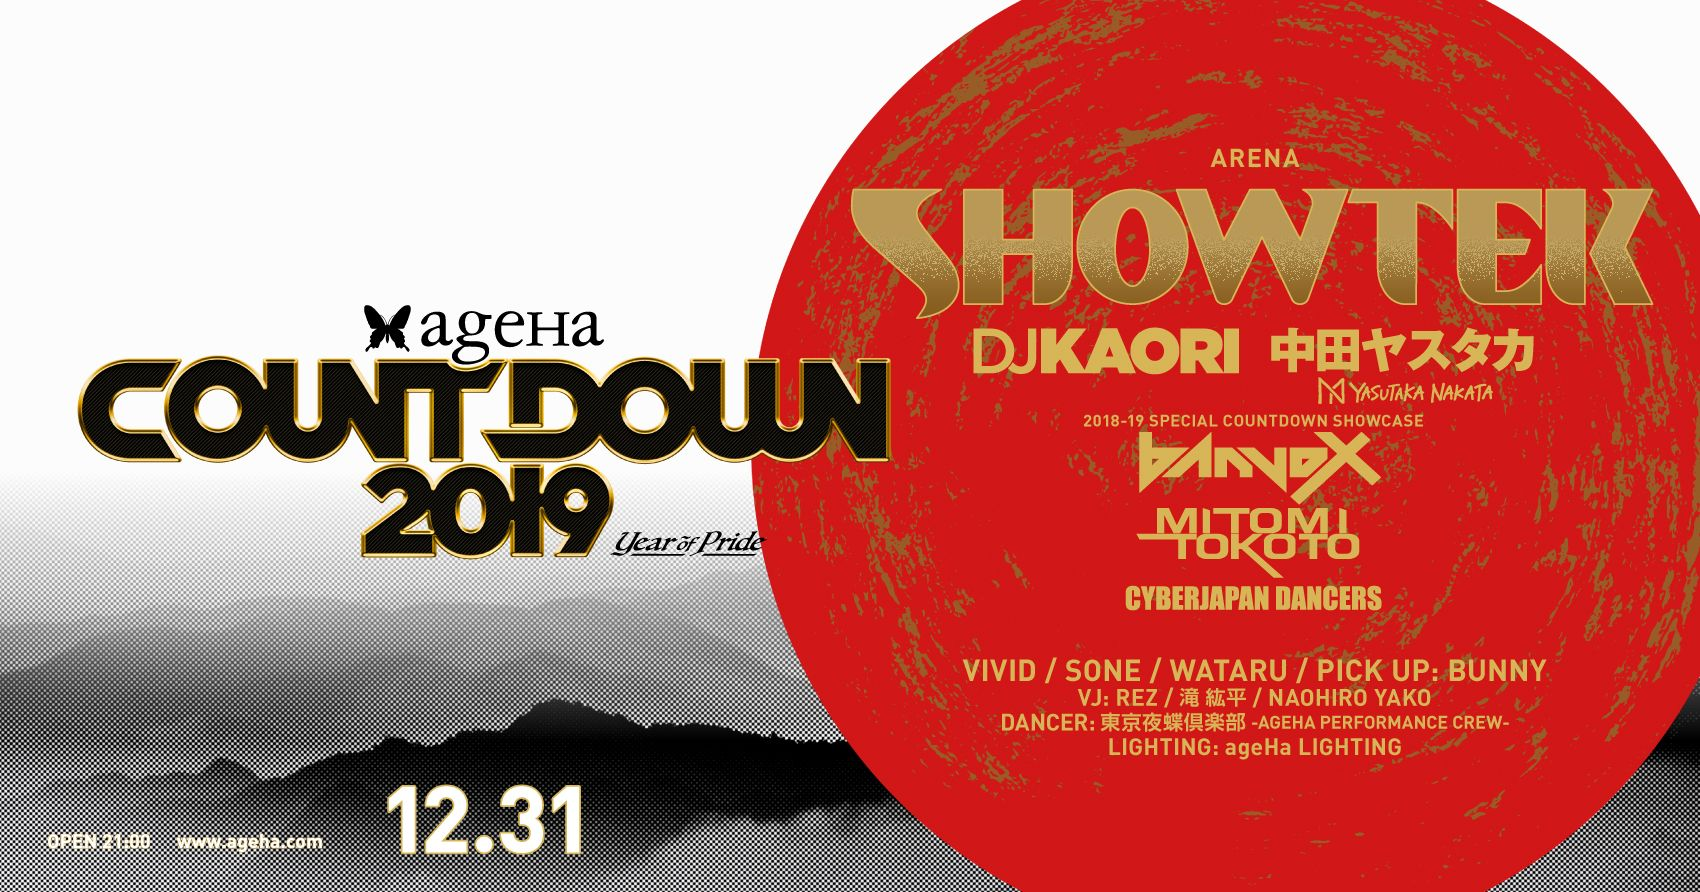 ageHa COUNTDOWN to 2019 -YEAR OF PRIDE-